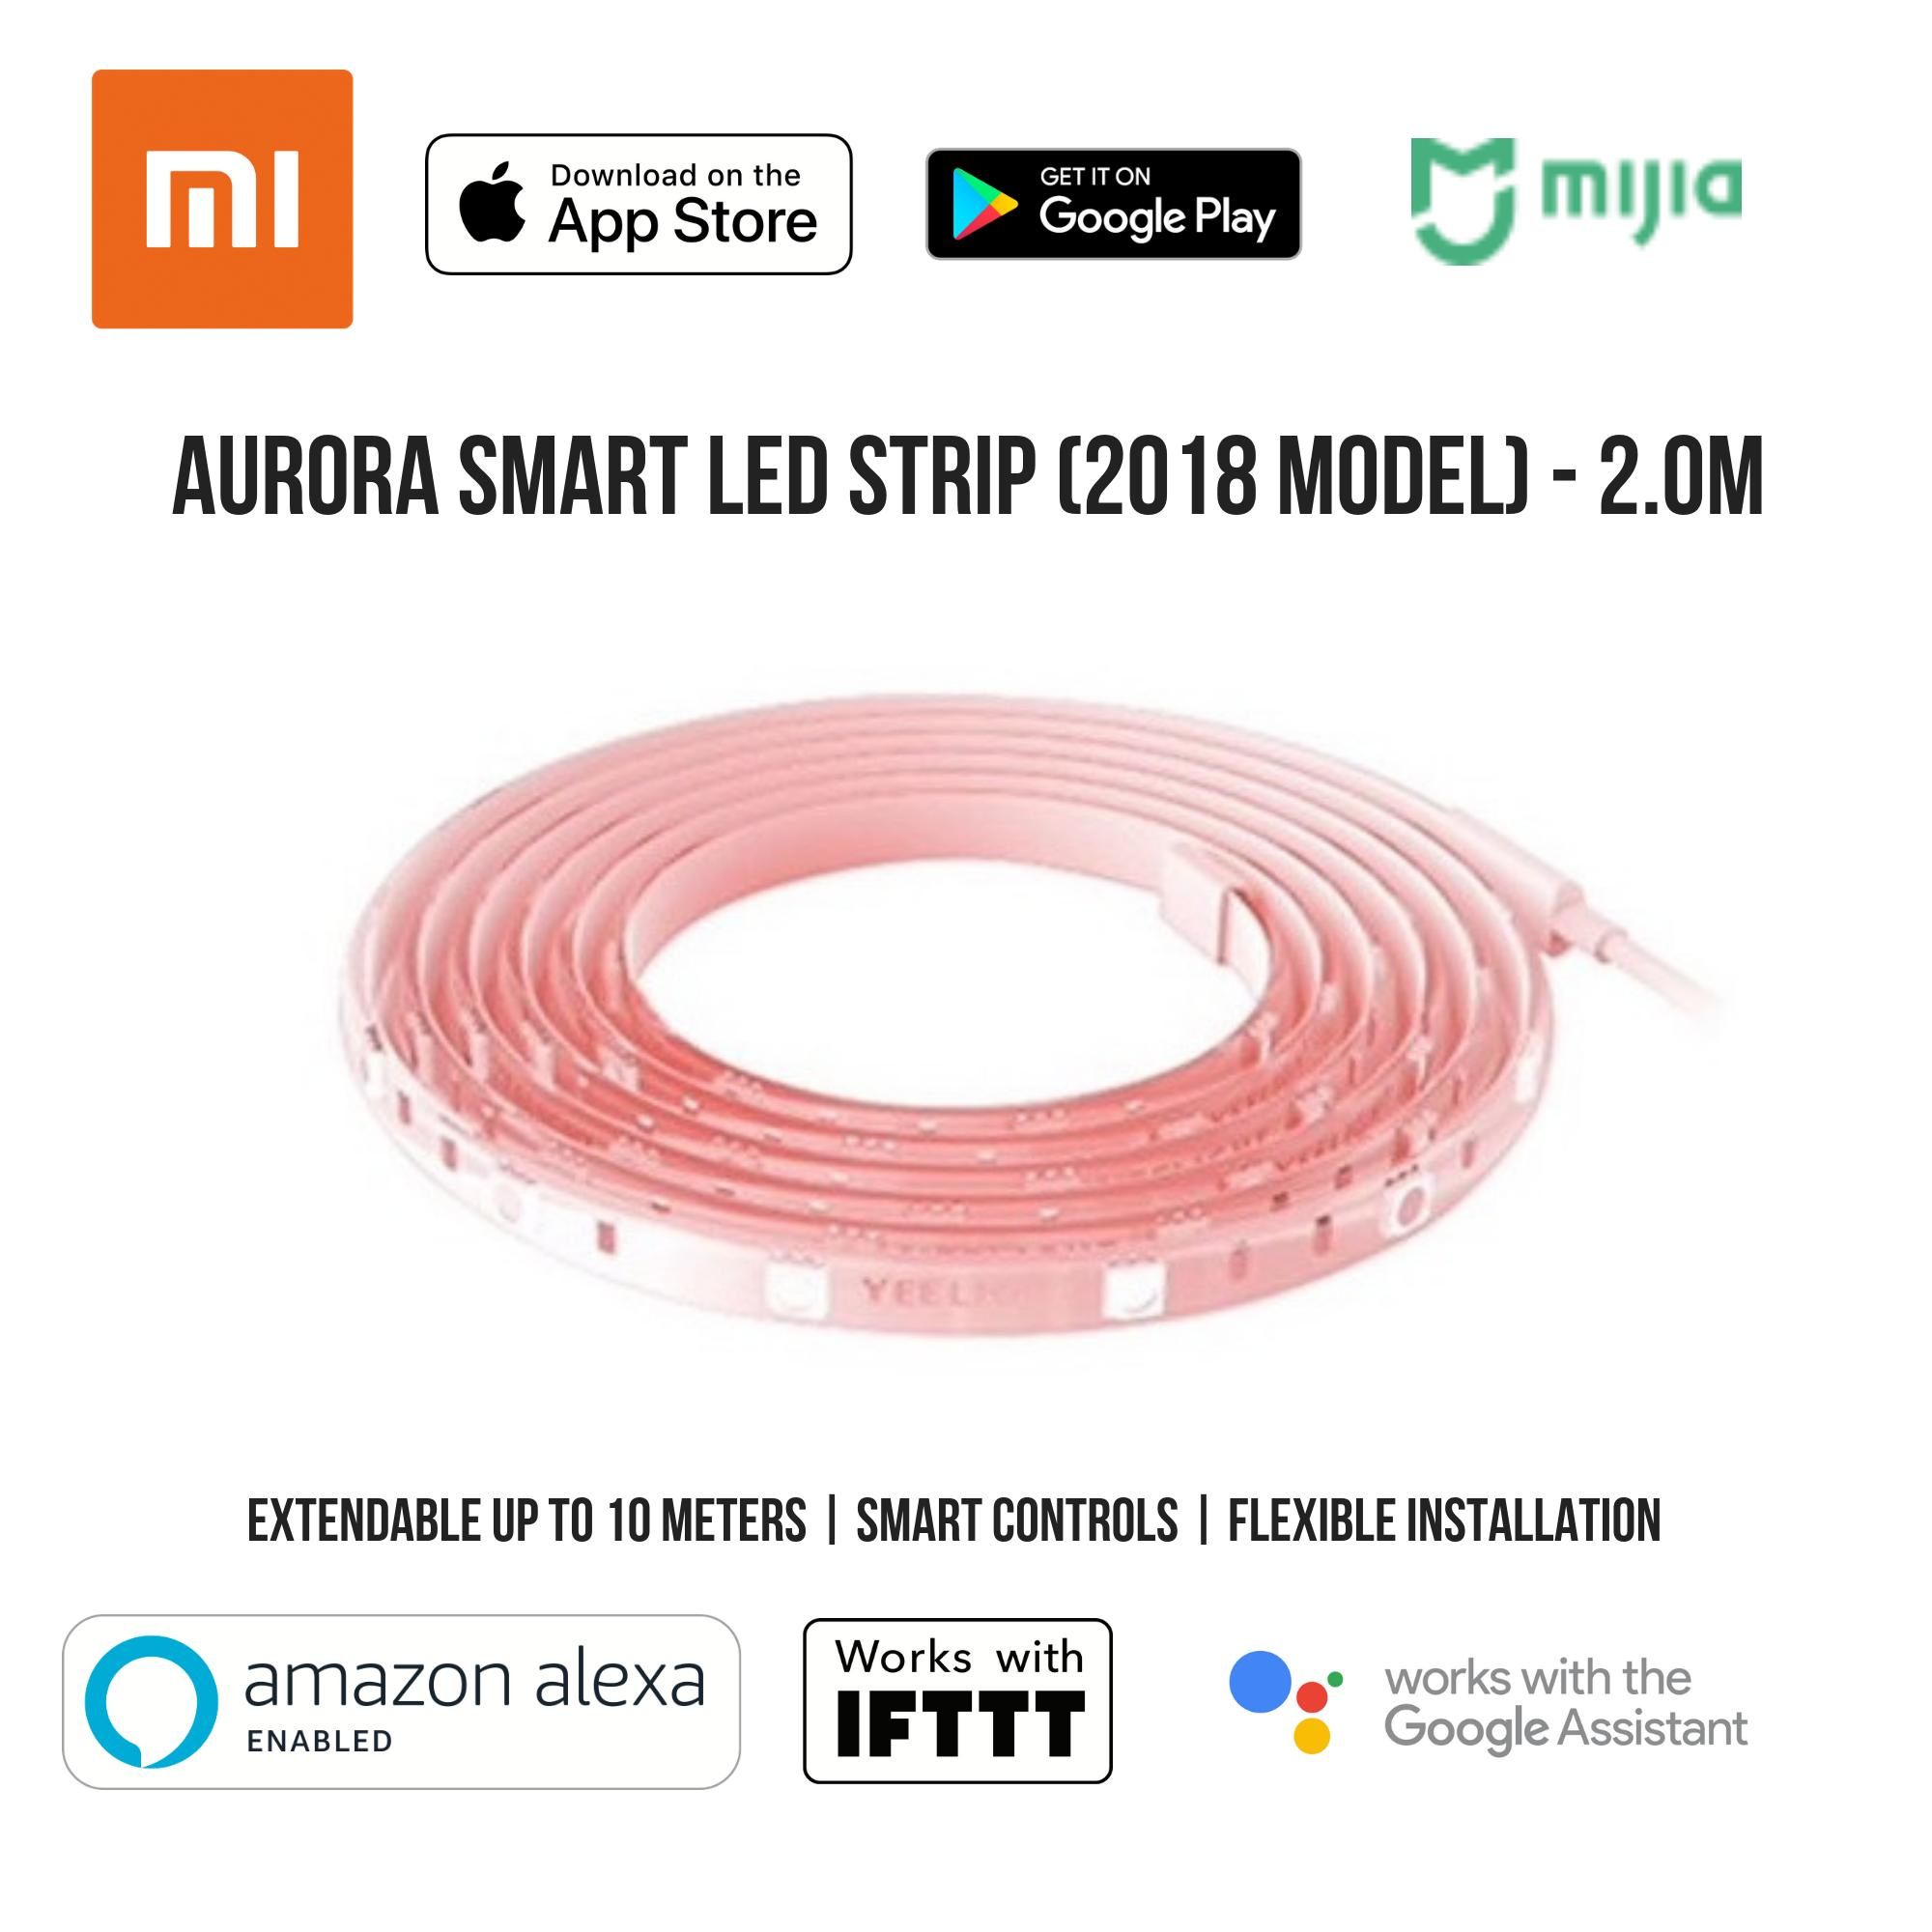 Yeelight Aurora Smart Led Lightstrip - Works With Google Home / Assistant, Amazon Alexa / Echo, Ifttt By Aftermarket.